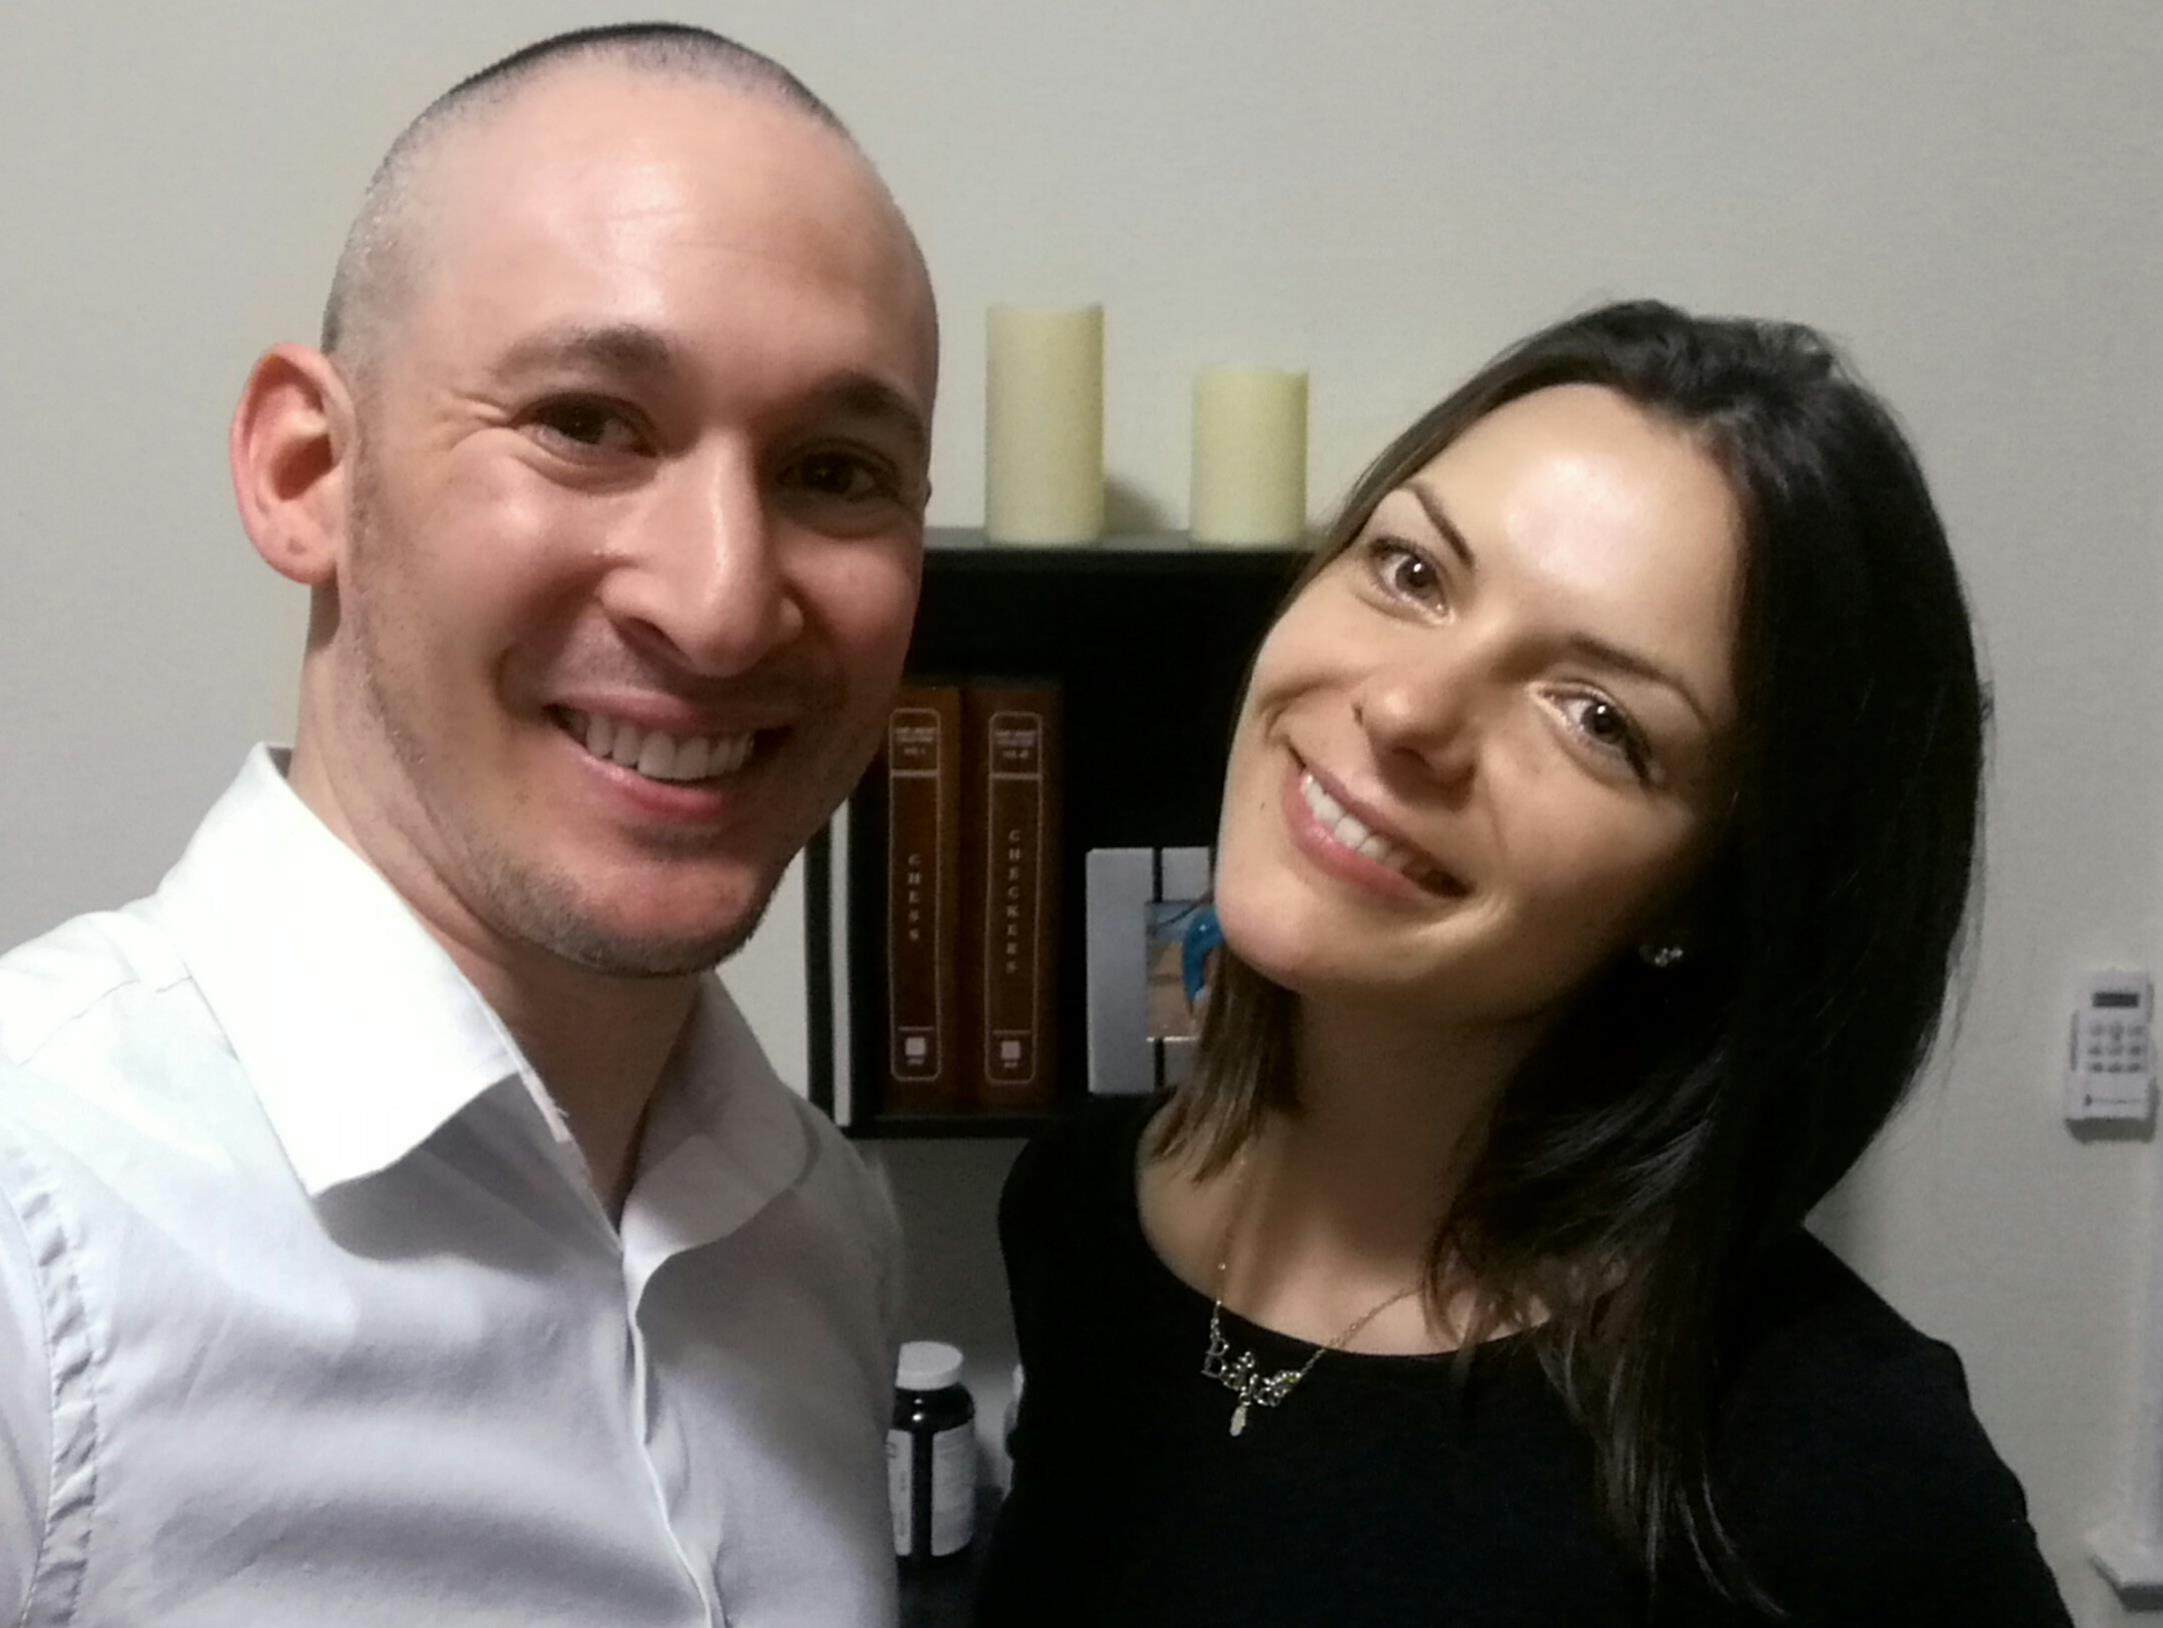 allston jewish singles Meet jewish singles in boston, massachusetts online & connect in the chat rooms dhu is a 100% free dating site to find single jewish women & men.